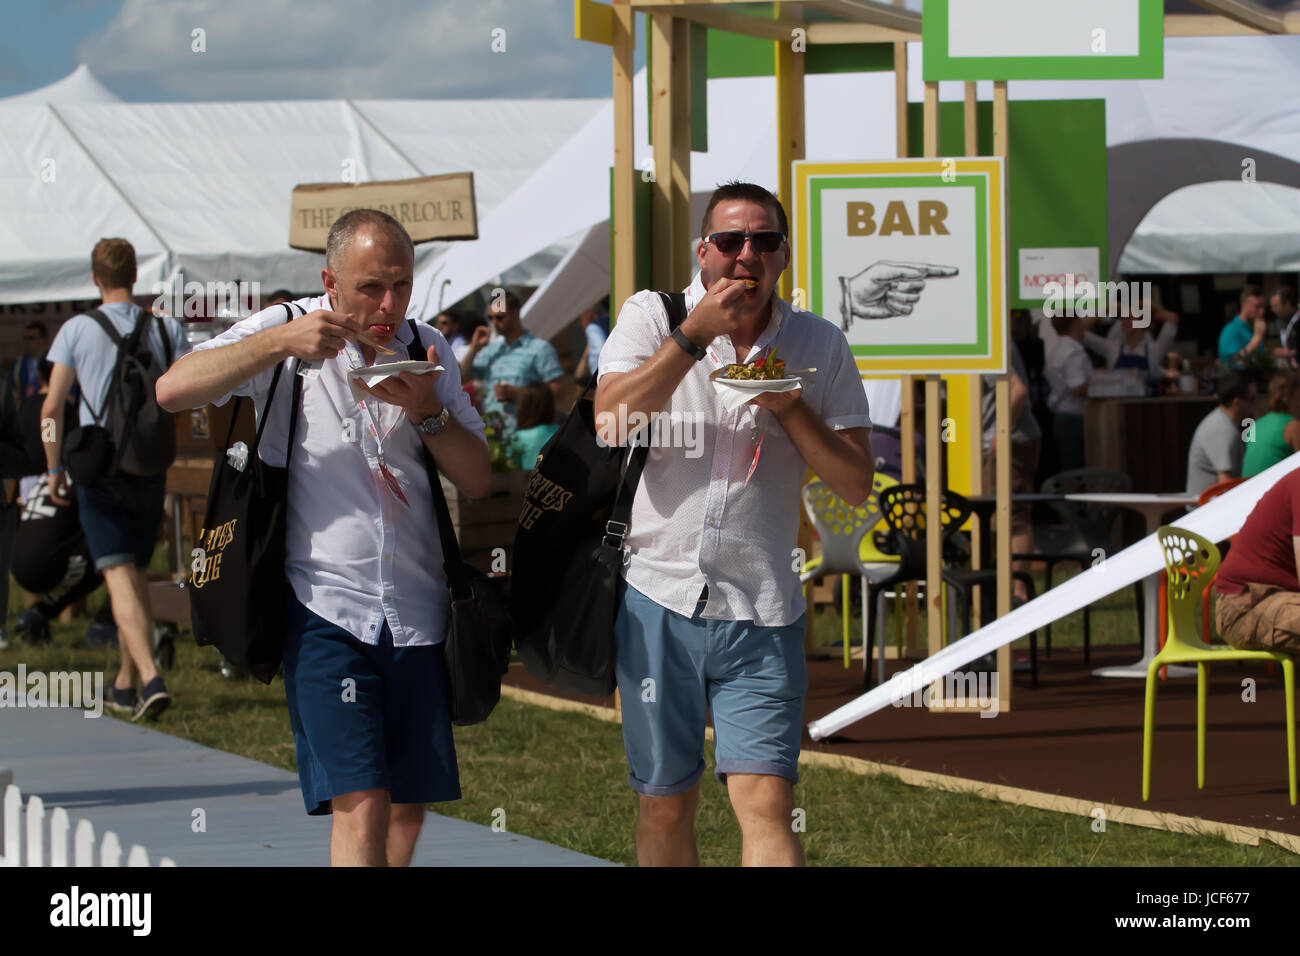 London, UK. 15th June, 2017. Taste of London takes place in Regents Park. Taste of London is the definitive showcase - Stock Image